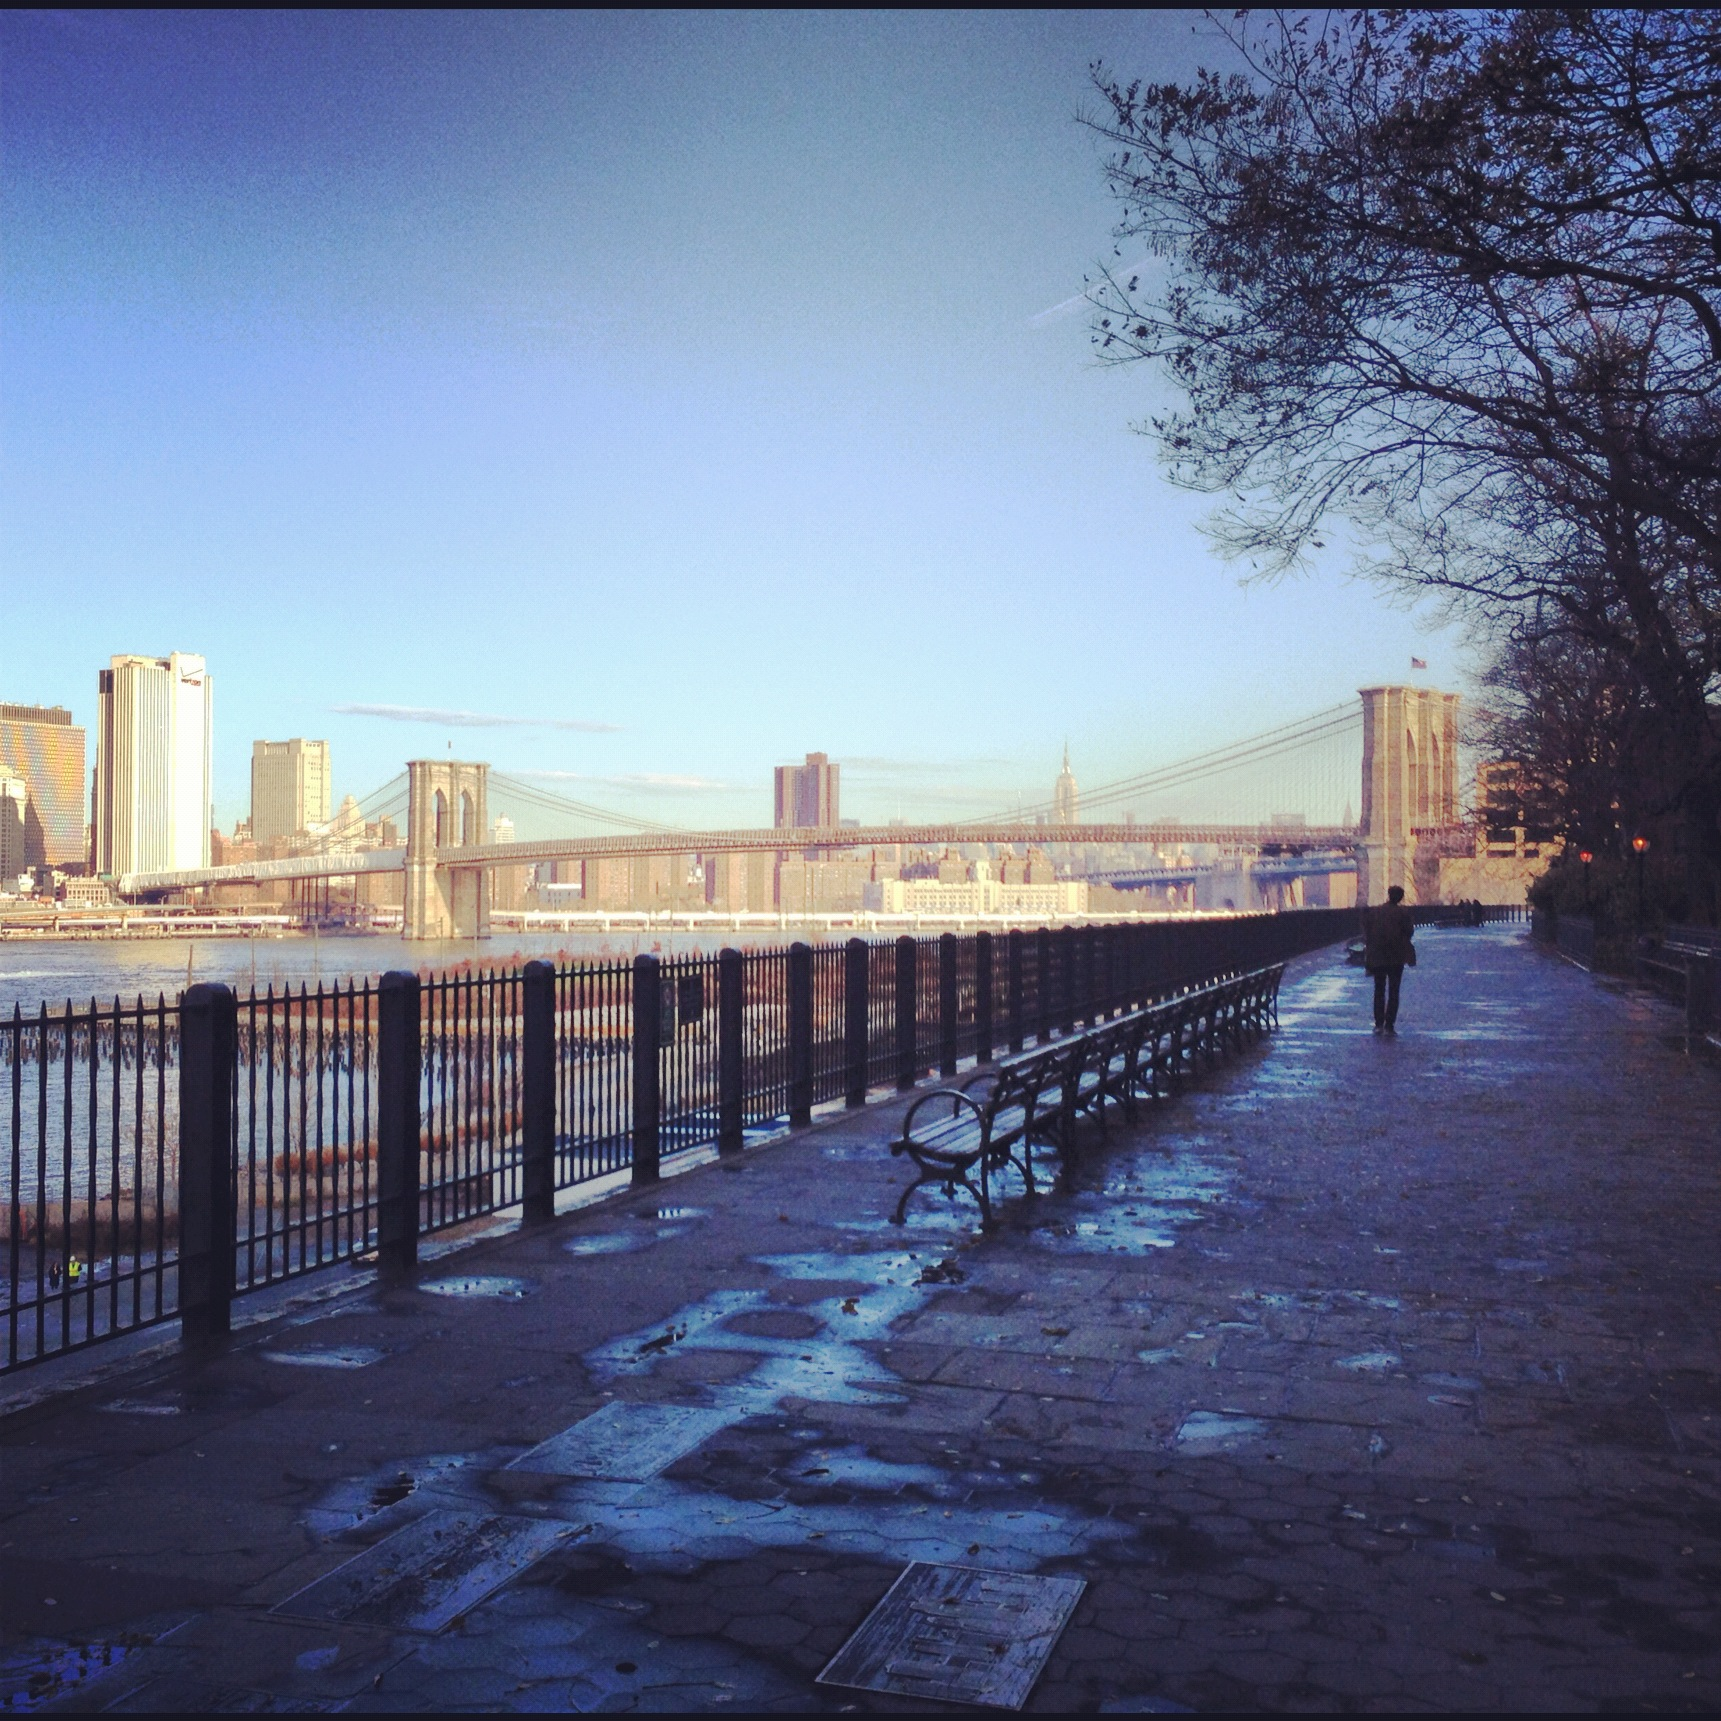 Brooklyn Heights Promenade, December 2012